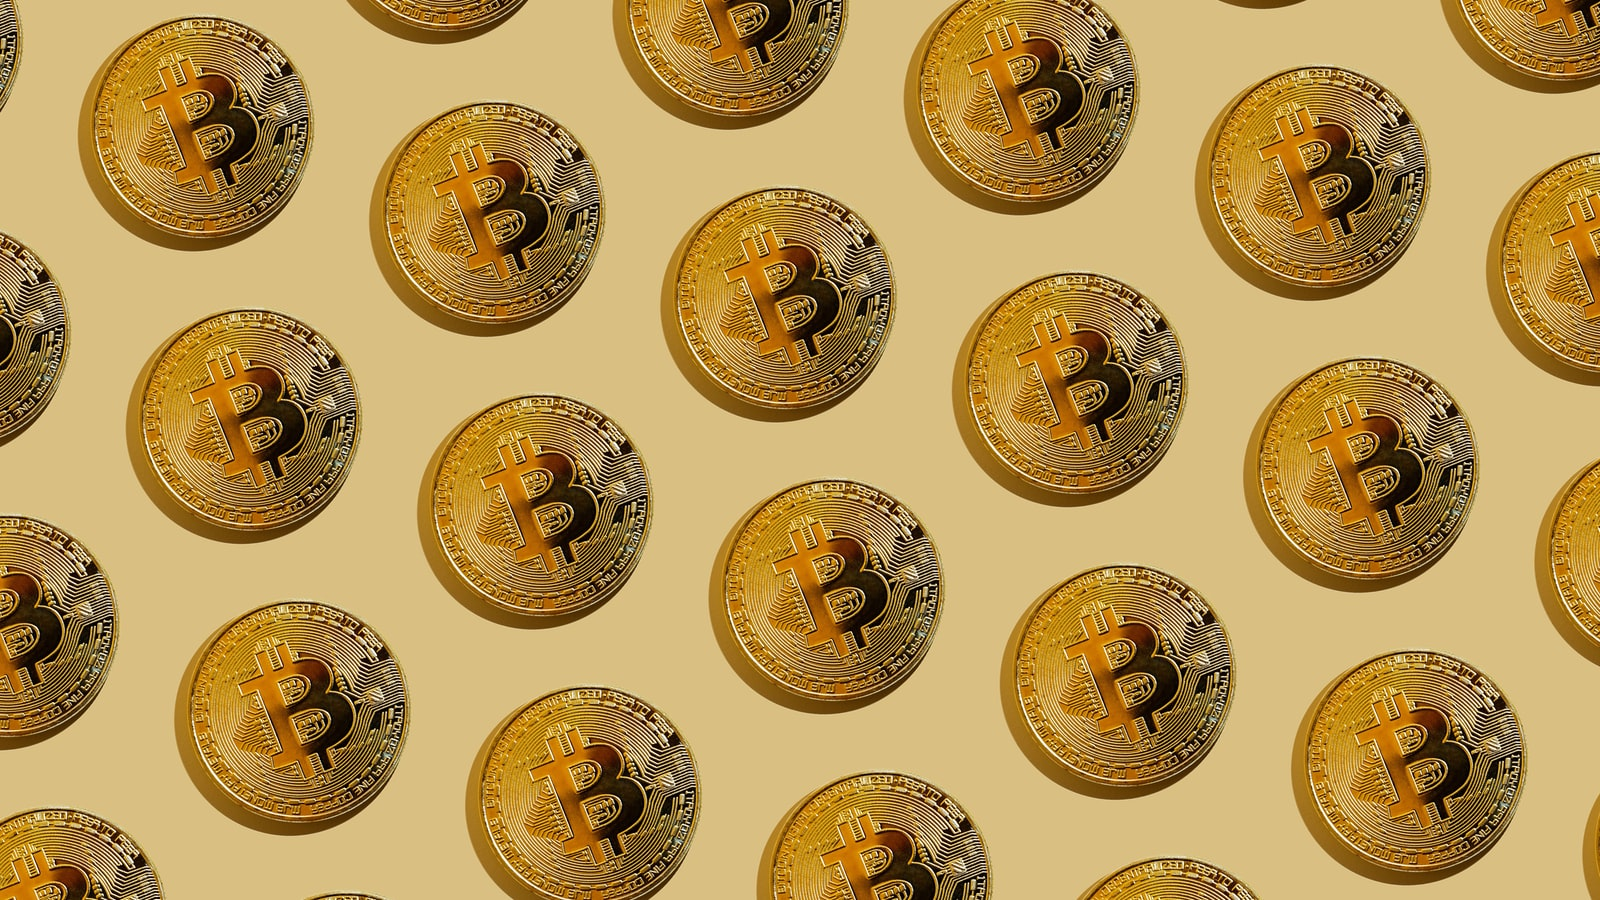 How to buy Bitcoins in Djibouti